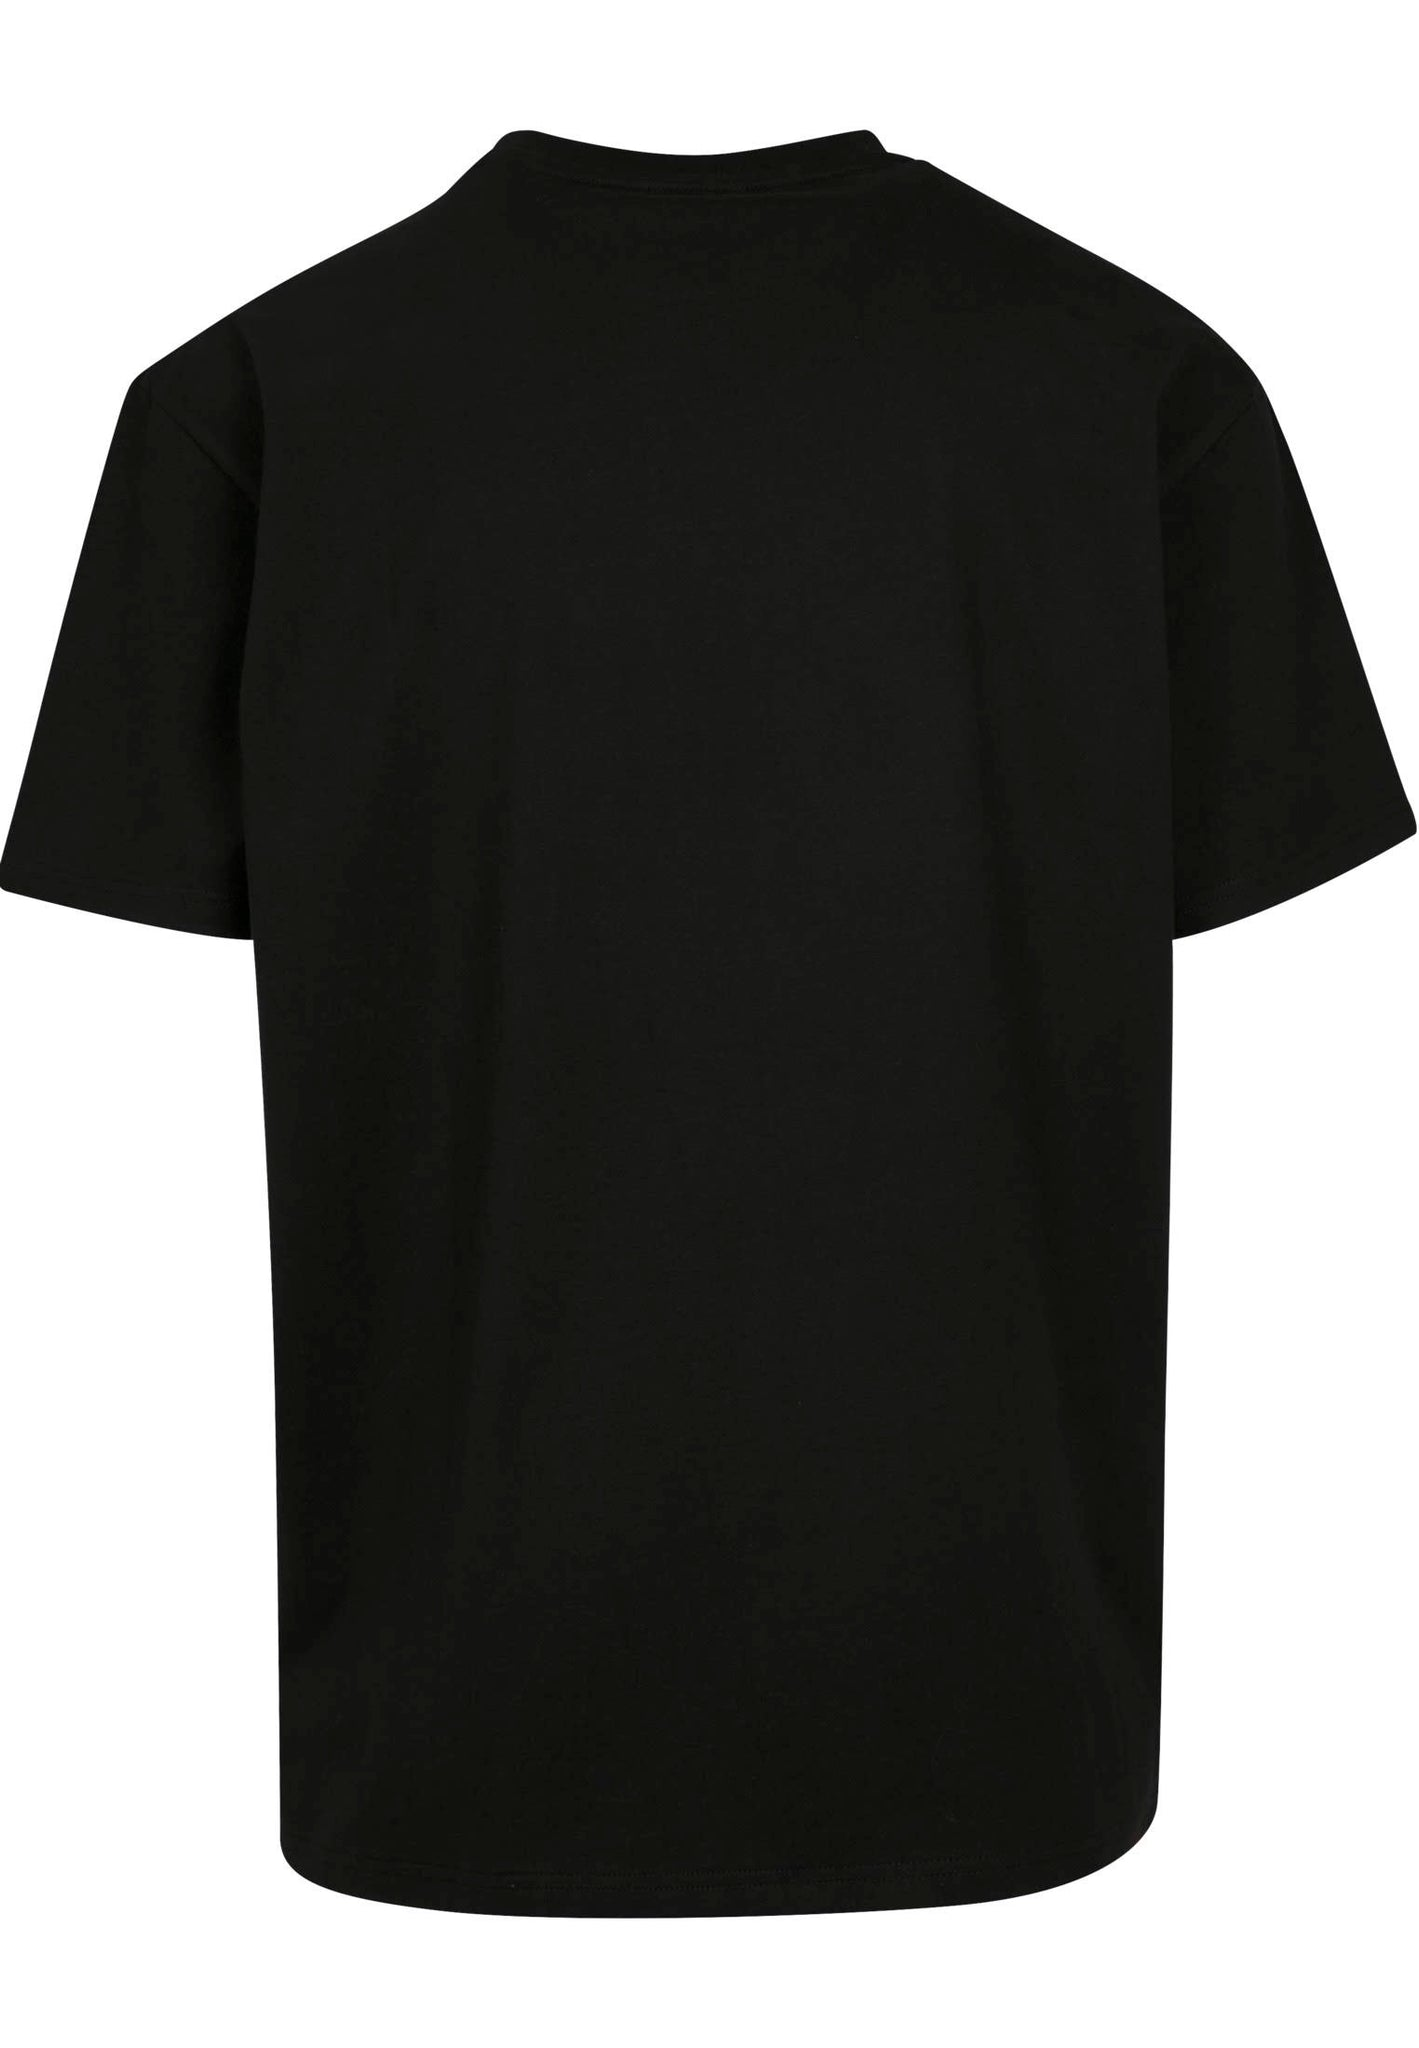 DEFINE CHRISTIAN Unisex Oversized T-Shirt (Black)